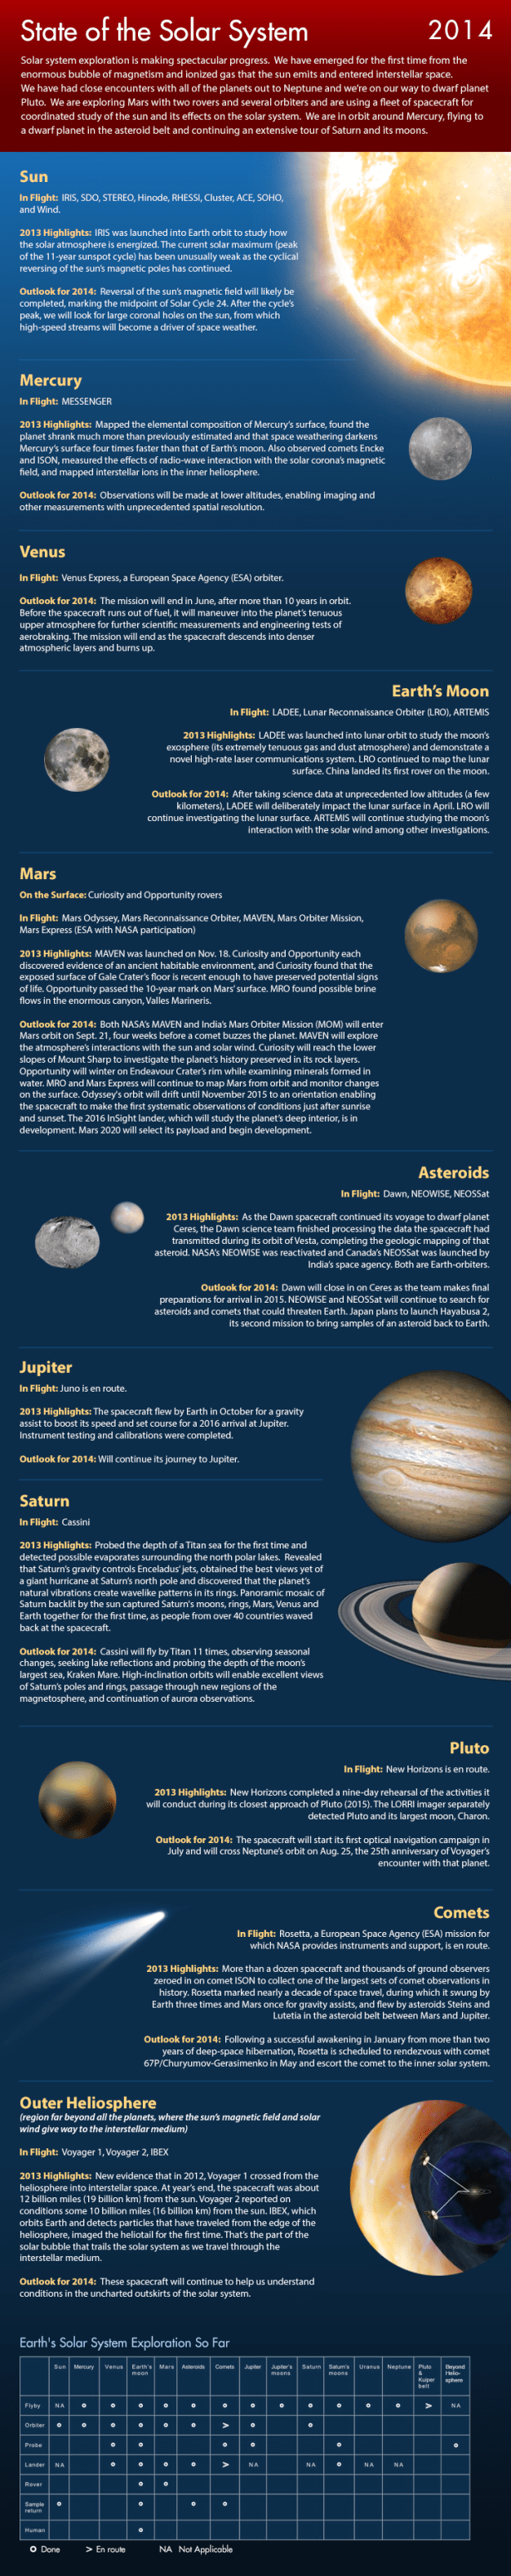 State of the Solar System infographic